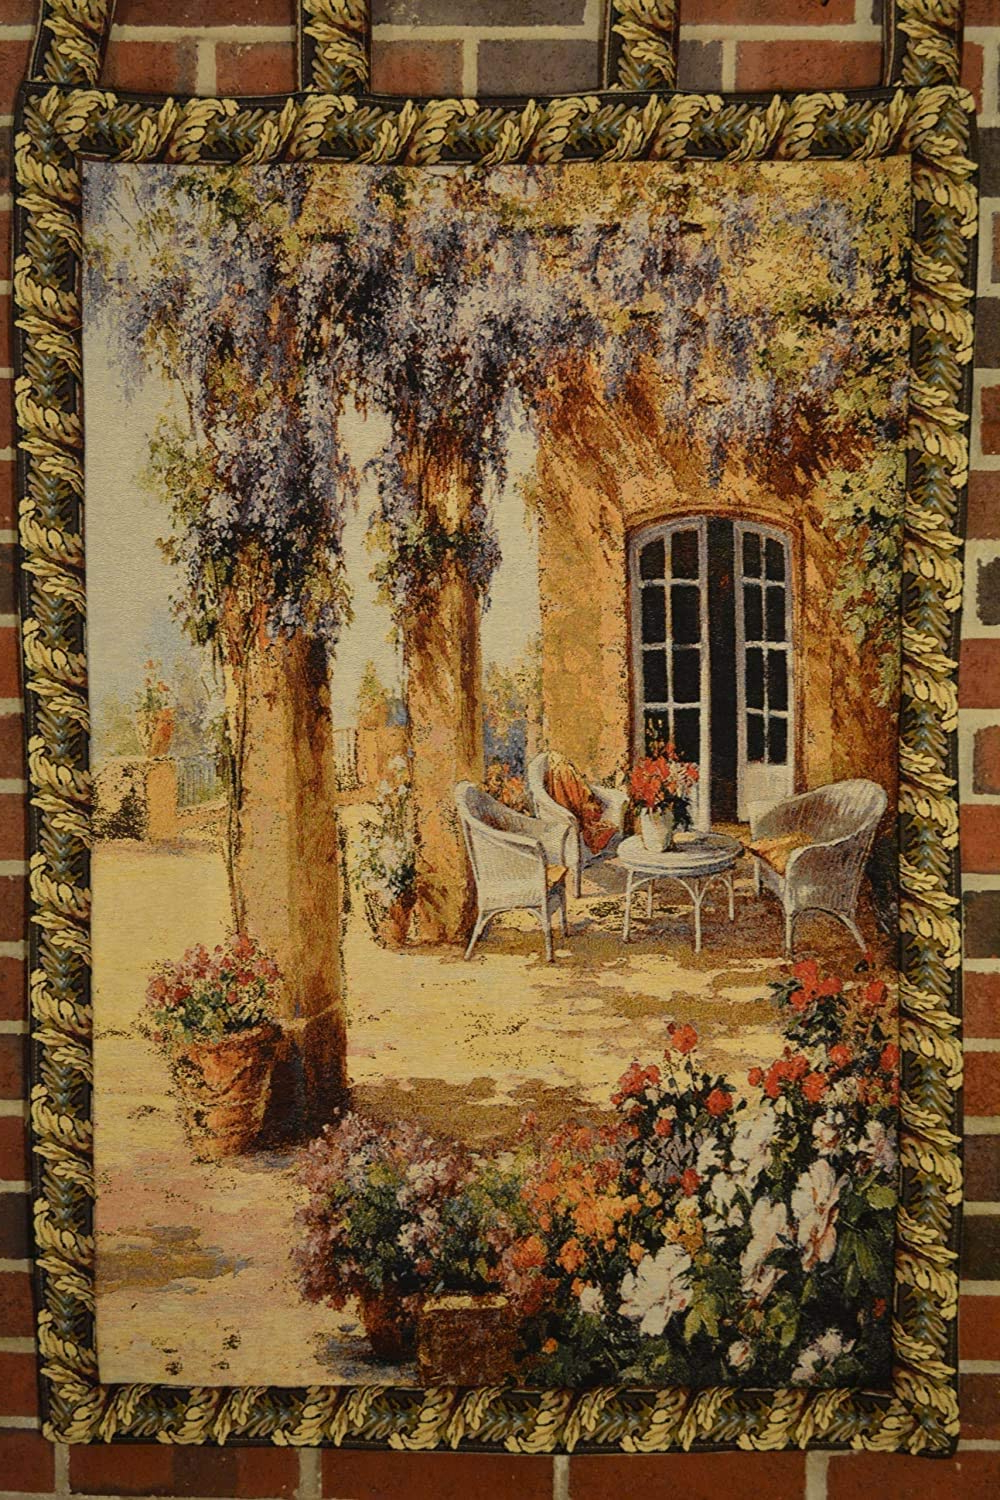 Trendy Tache 28 X 47 Inch Festive Picturesque Country Rustic Woven Spring Party Tapestry Wall Hanging Art Home Decor With Hanging Loops With Blended Fabric Faraway Longing Wall Hangings (View 8 of 20)